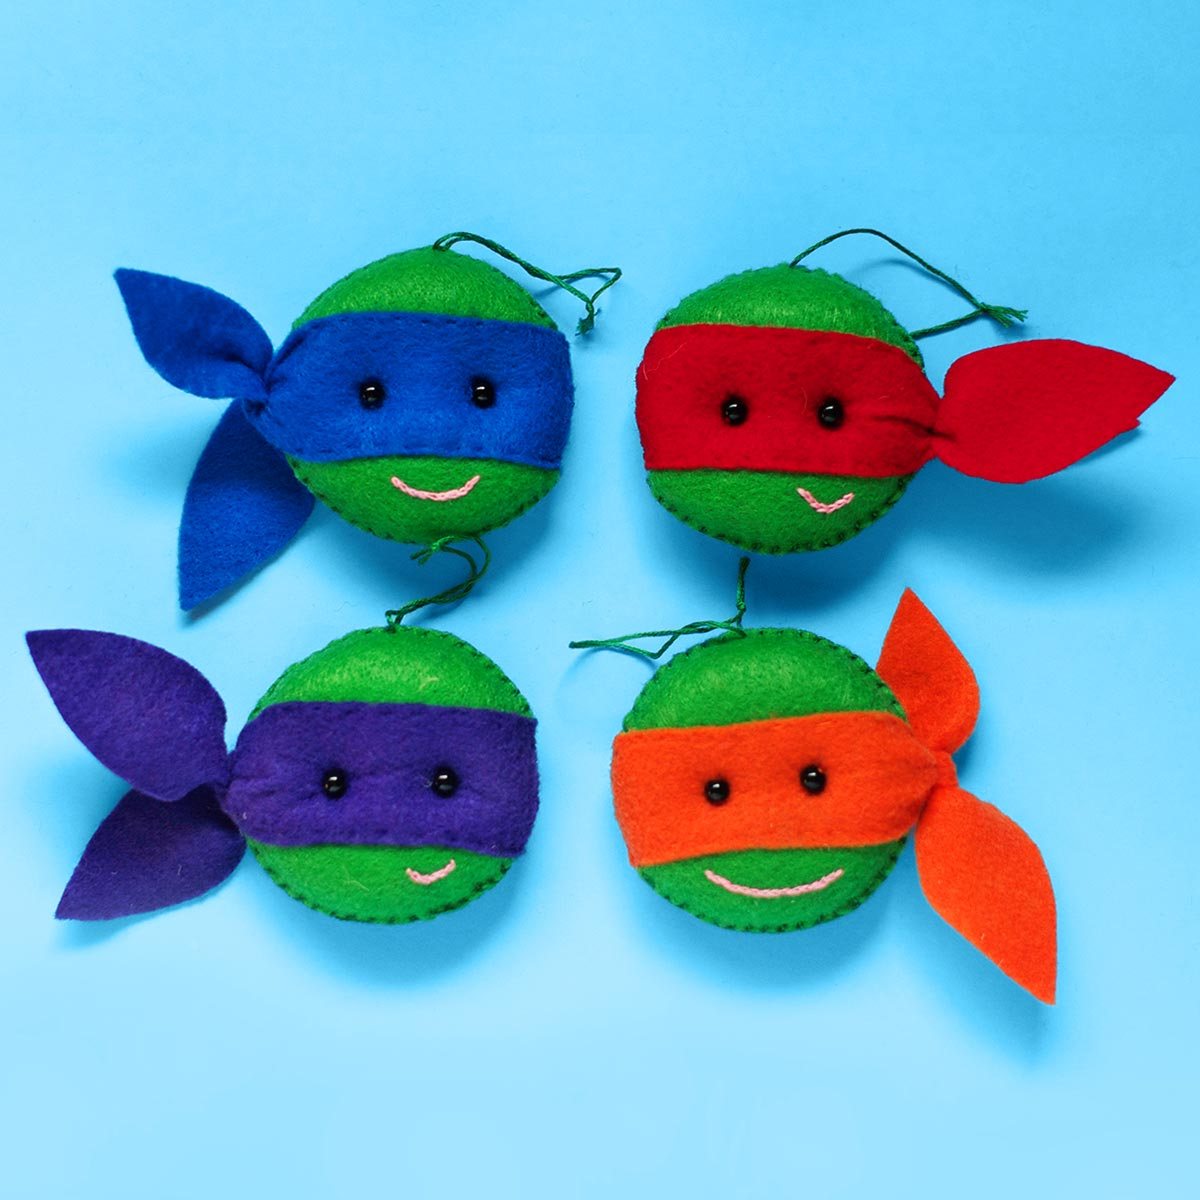 Gnarly TMNT Felt Christmas Ornaments | Nickelodeon Parents